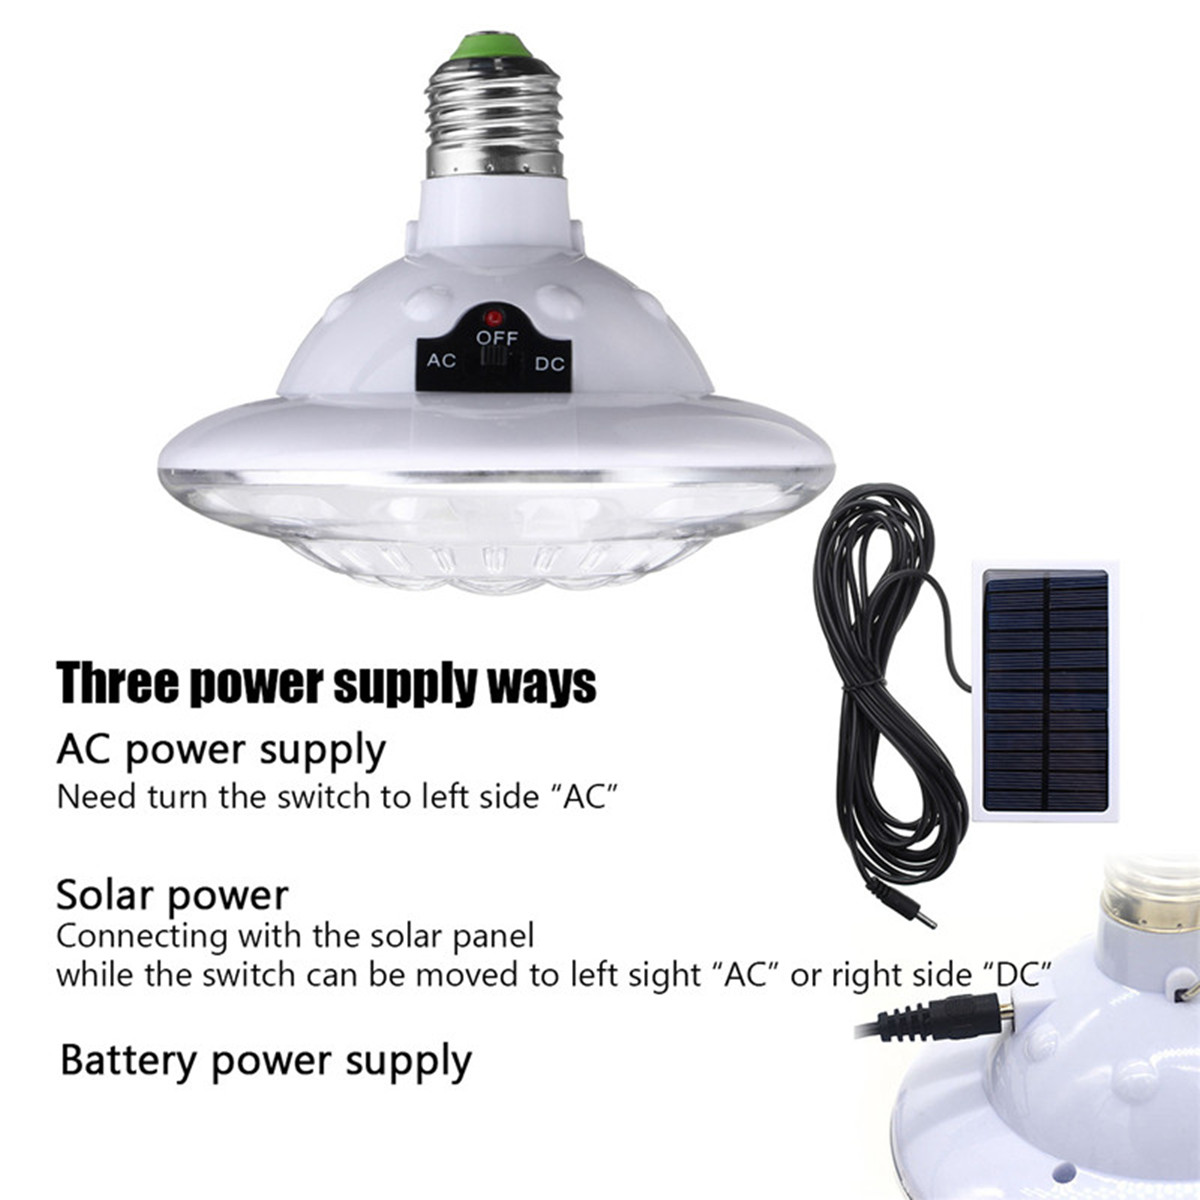 22LED Outdoor Indoor Solar Lamp Hooking Camping Light Hiking Garden Path Bulb Remote Control